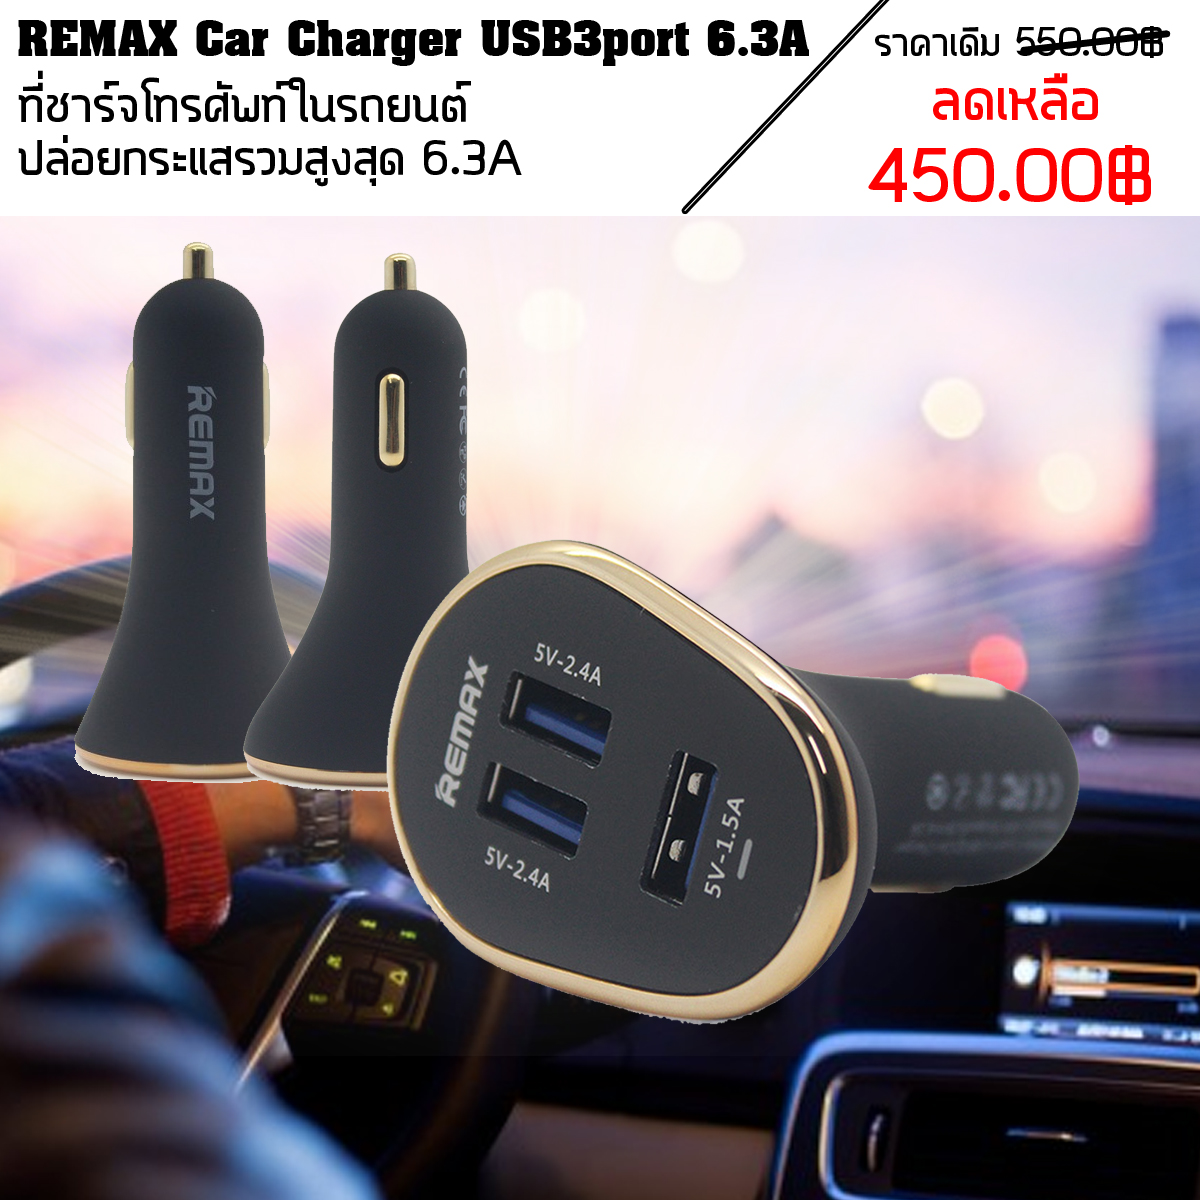 REMAX Car Charger USB3port 6